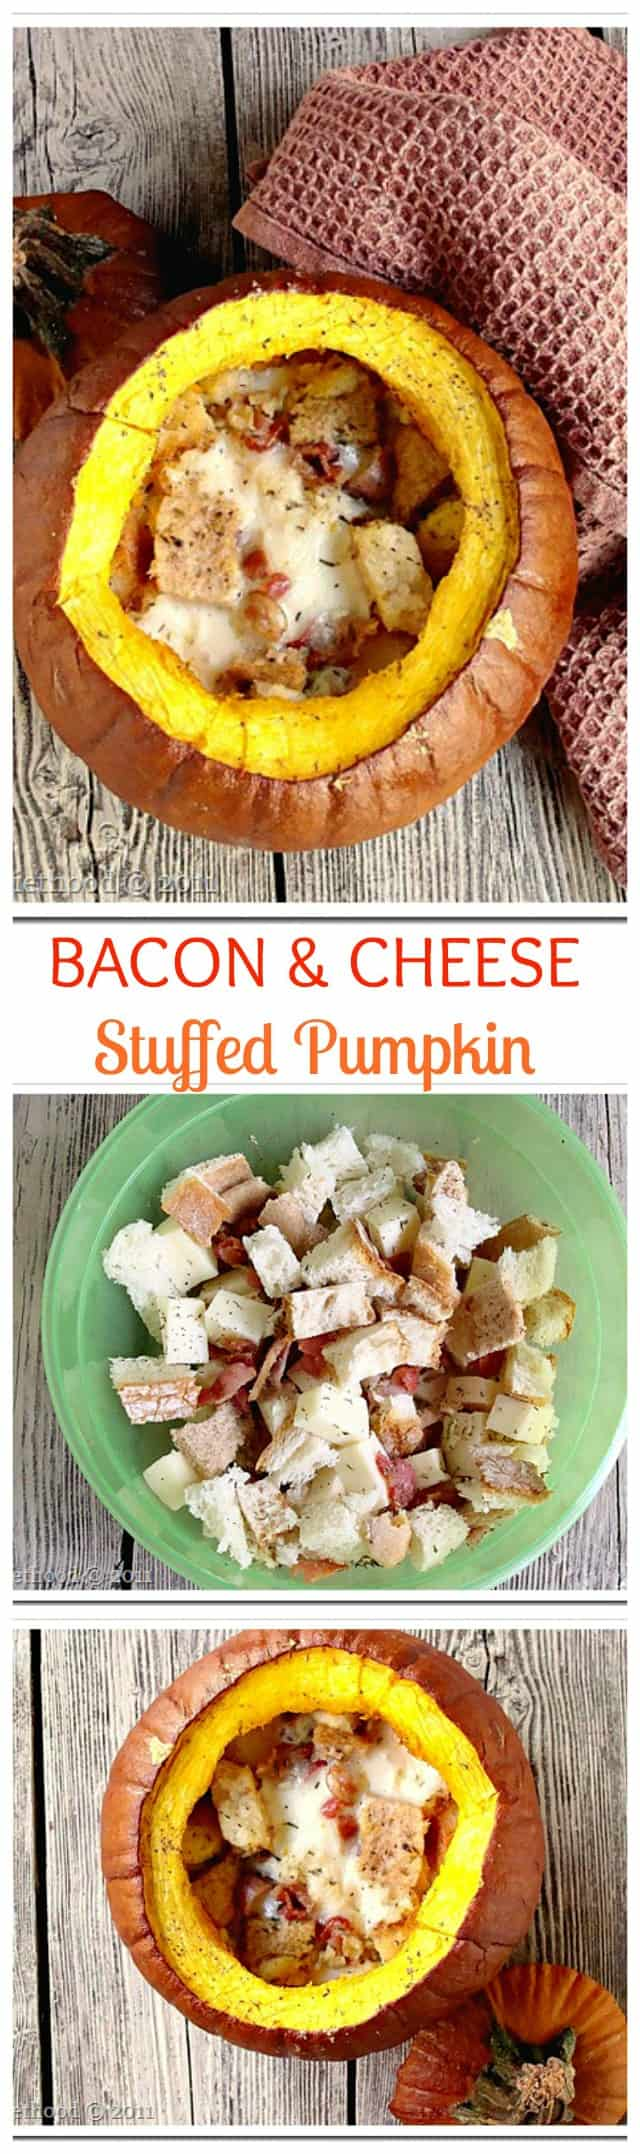 Bacon and Cheese Stuffed Pumpkin by Diethood French Fridays with Dorie: Pumpkin Stuffed with Everything Good